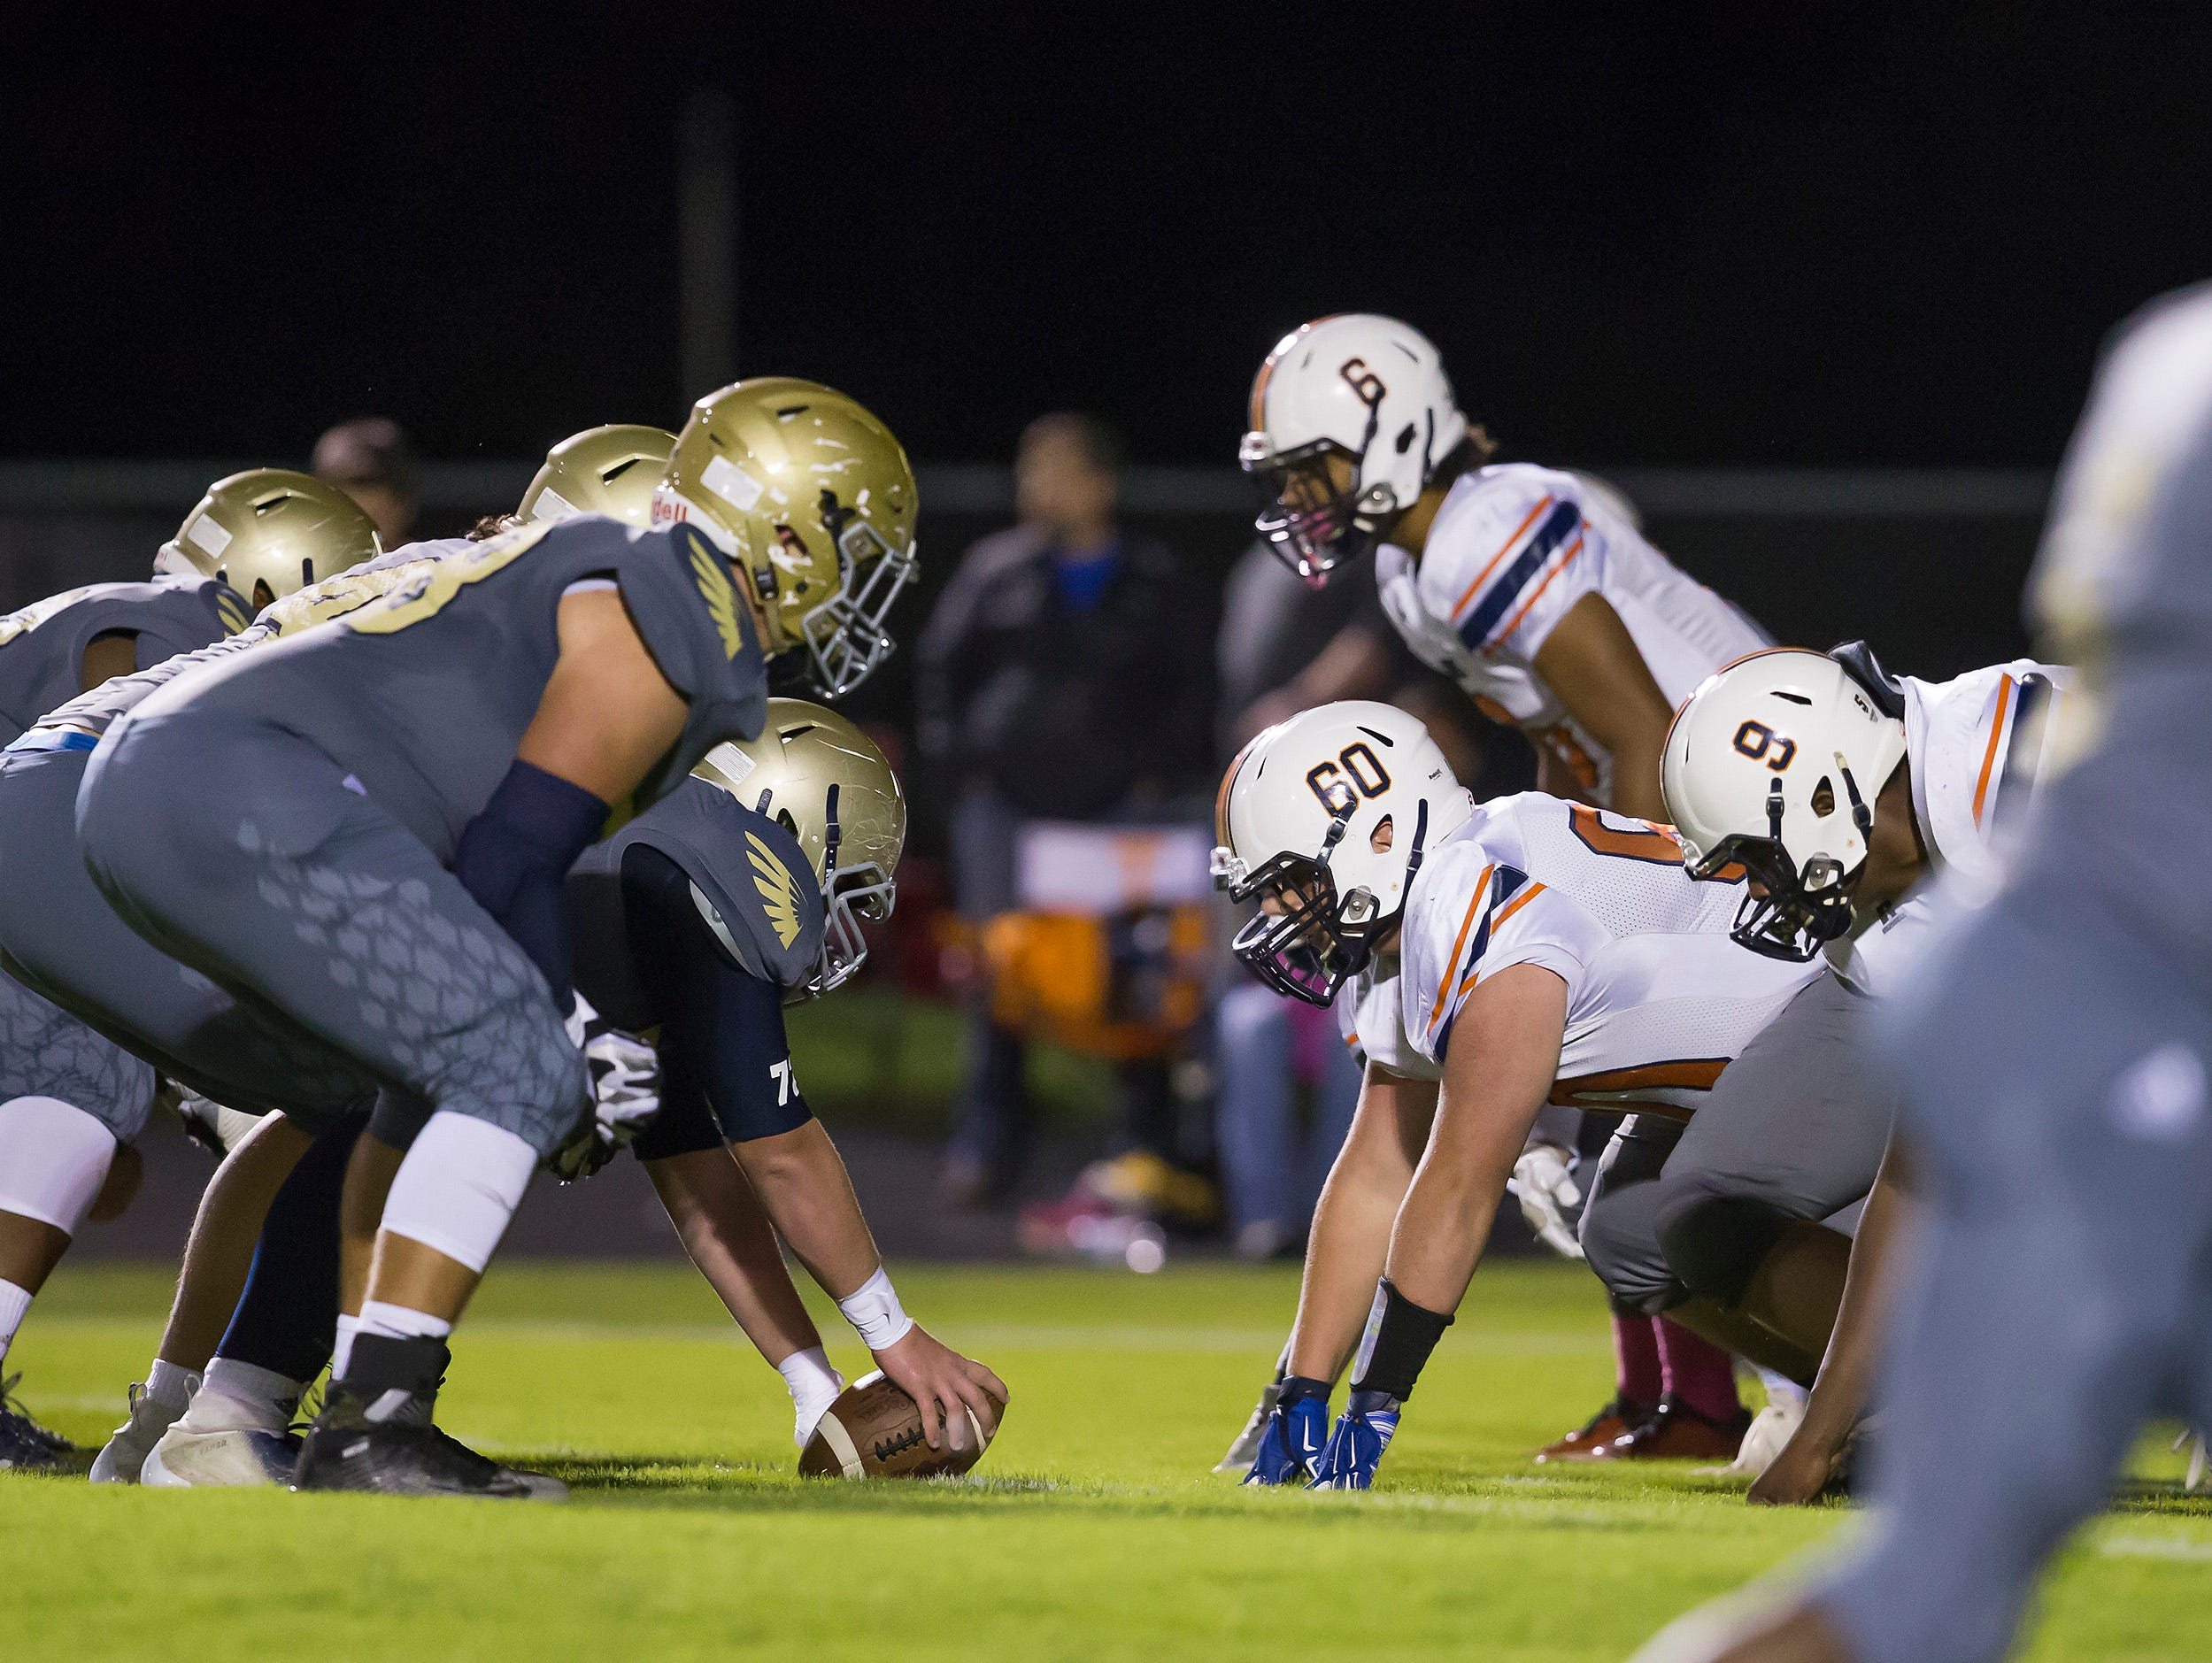 Dickson County's defense lined up to take on Independence's offense For Independence's homecoming.